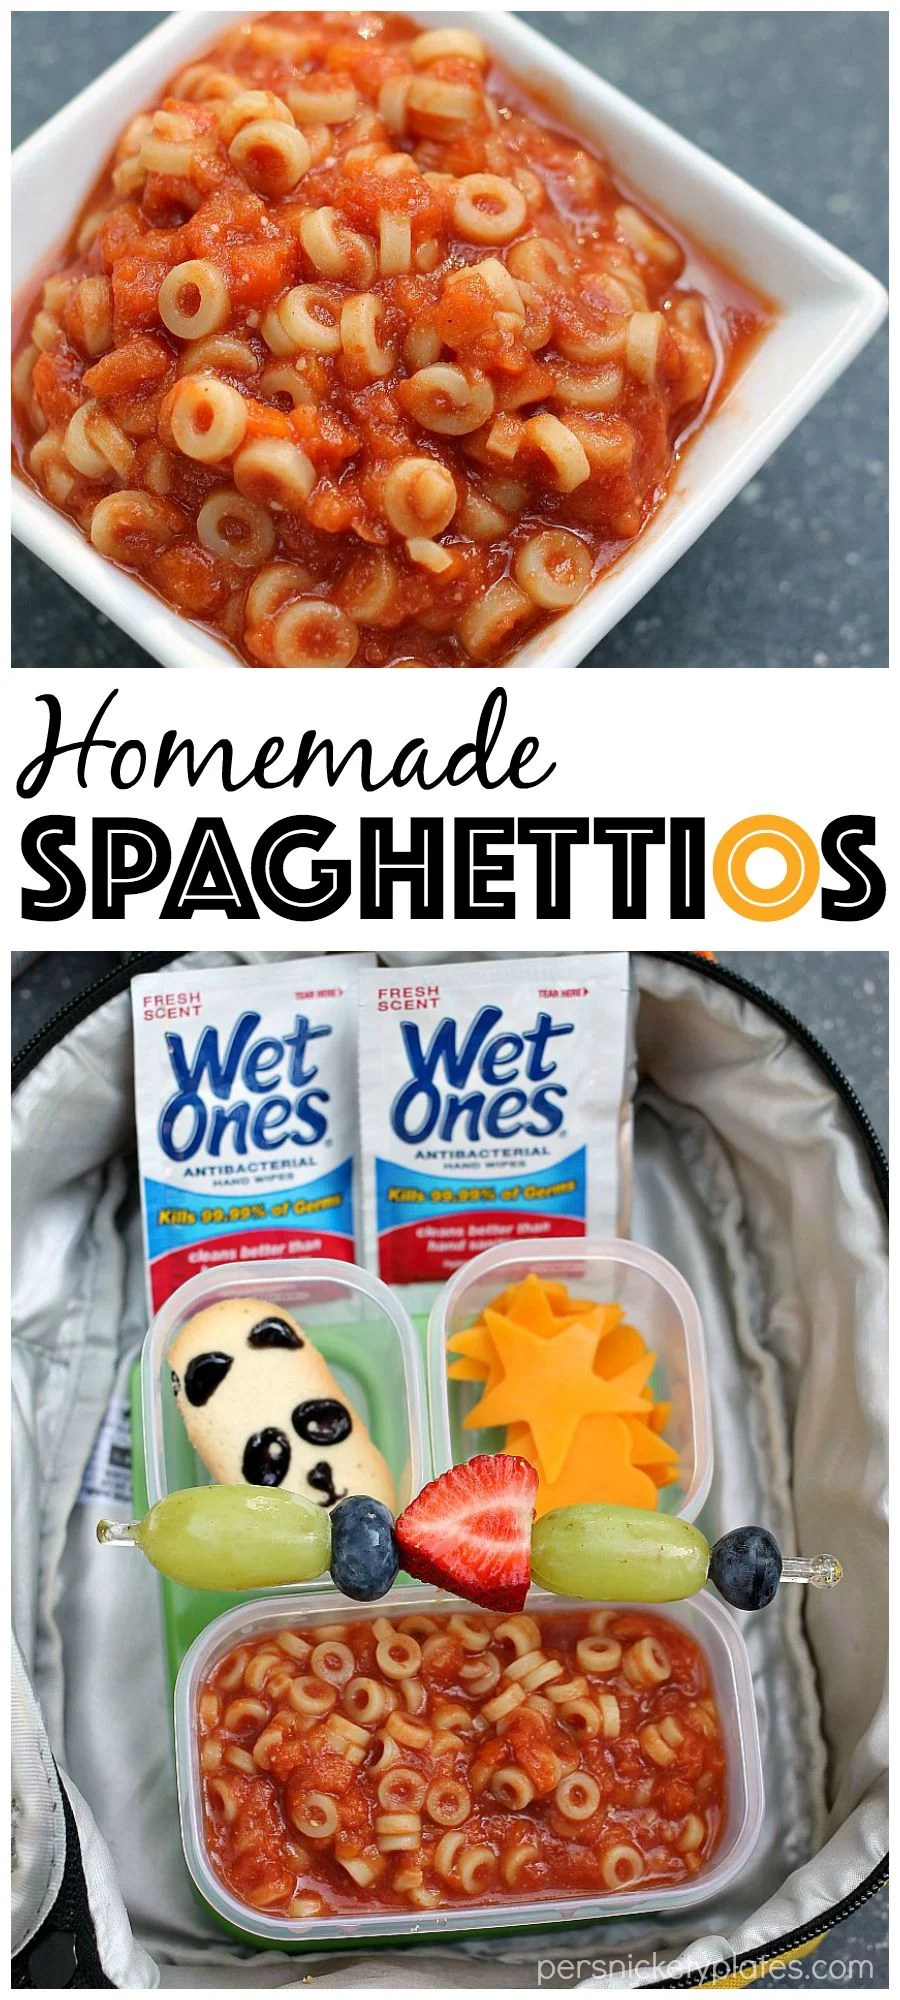 Homemade Spaghettios & Lunchbox Ideas for back to school | Persnickety Plates #ad #WishIHadAWetOnes